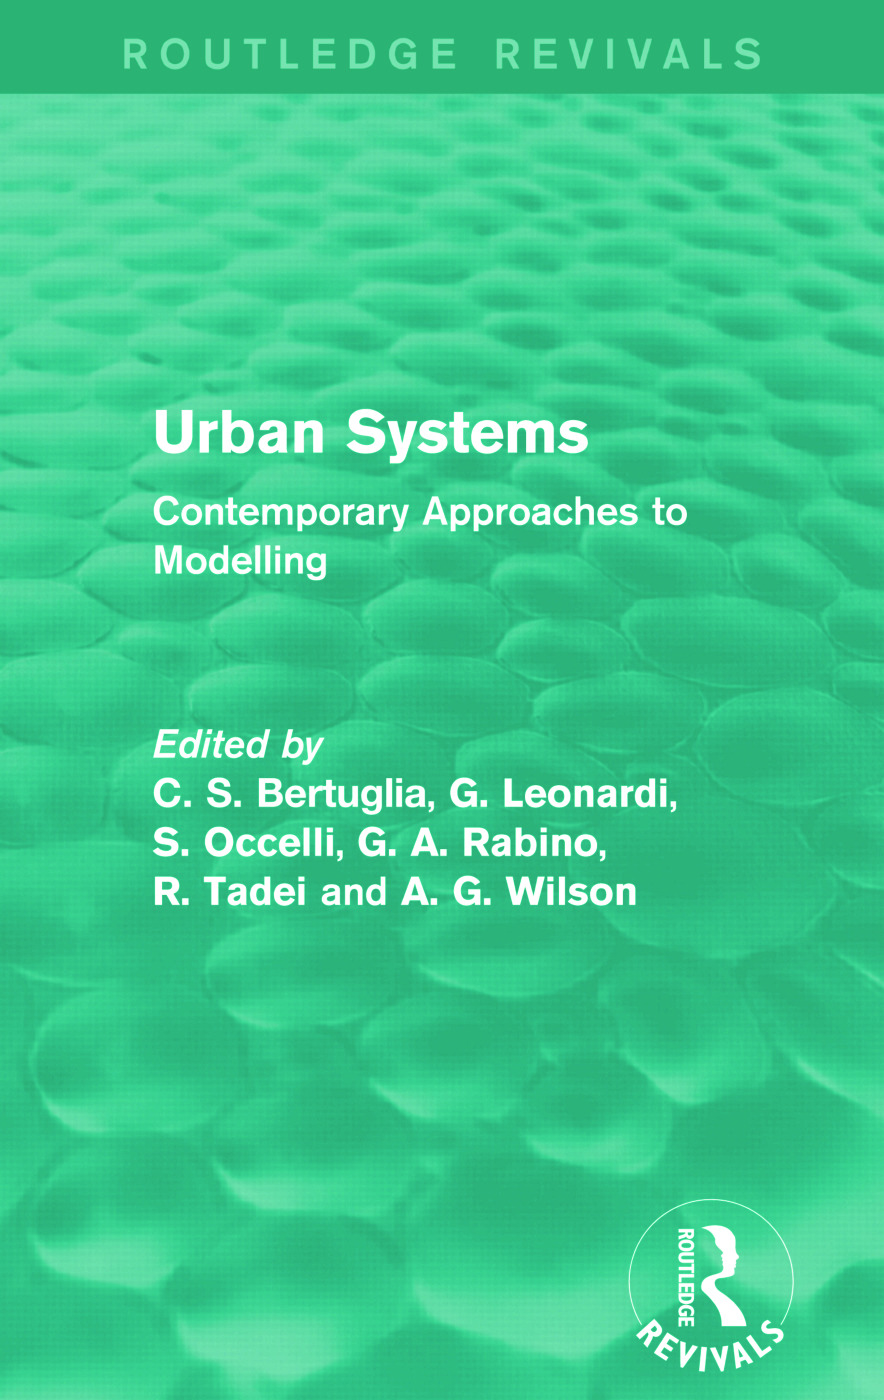 Urban Systems (Routledge Revivals): Contemporary Approaches to Modelling, 1st Edition (Paperback) book cover